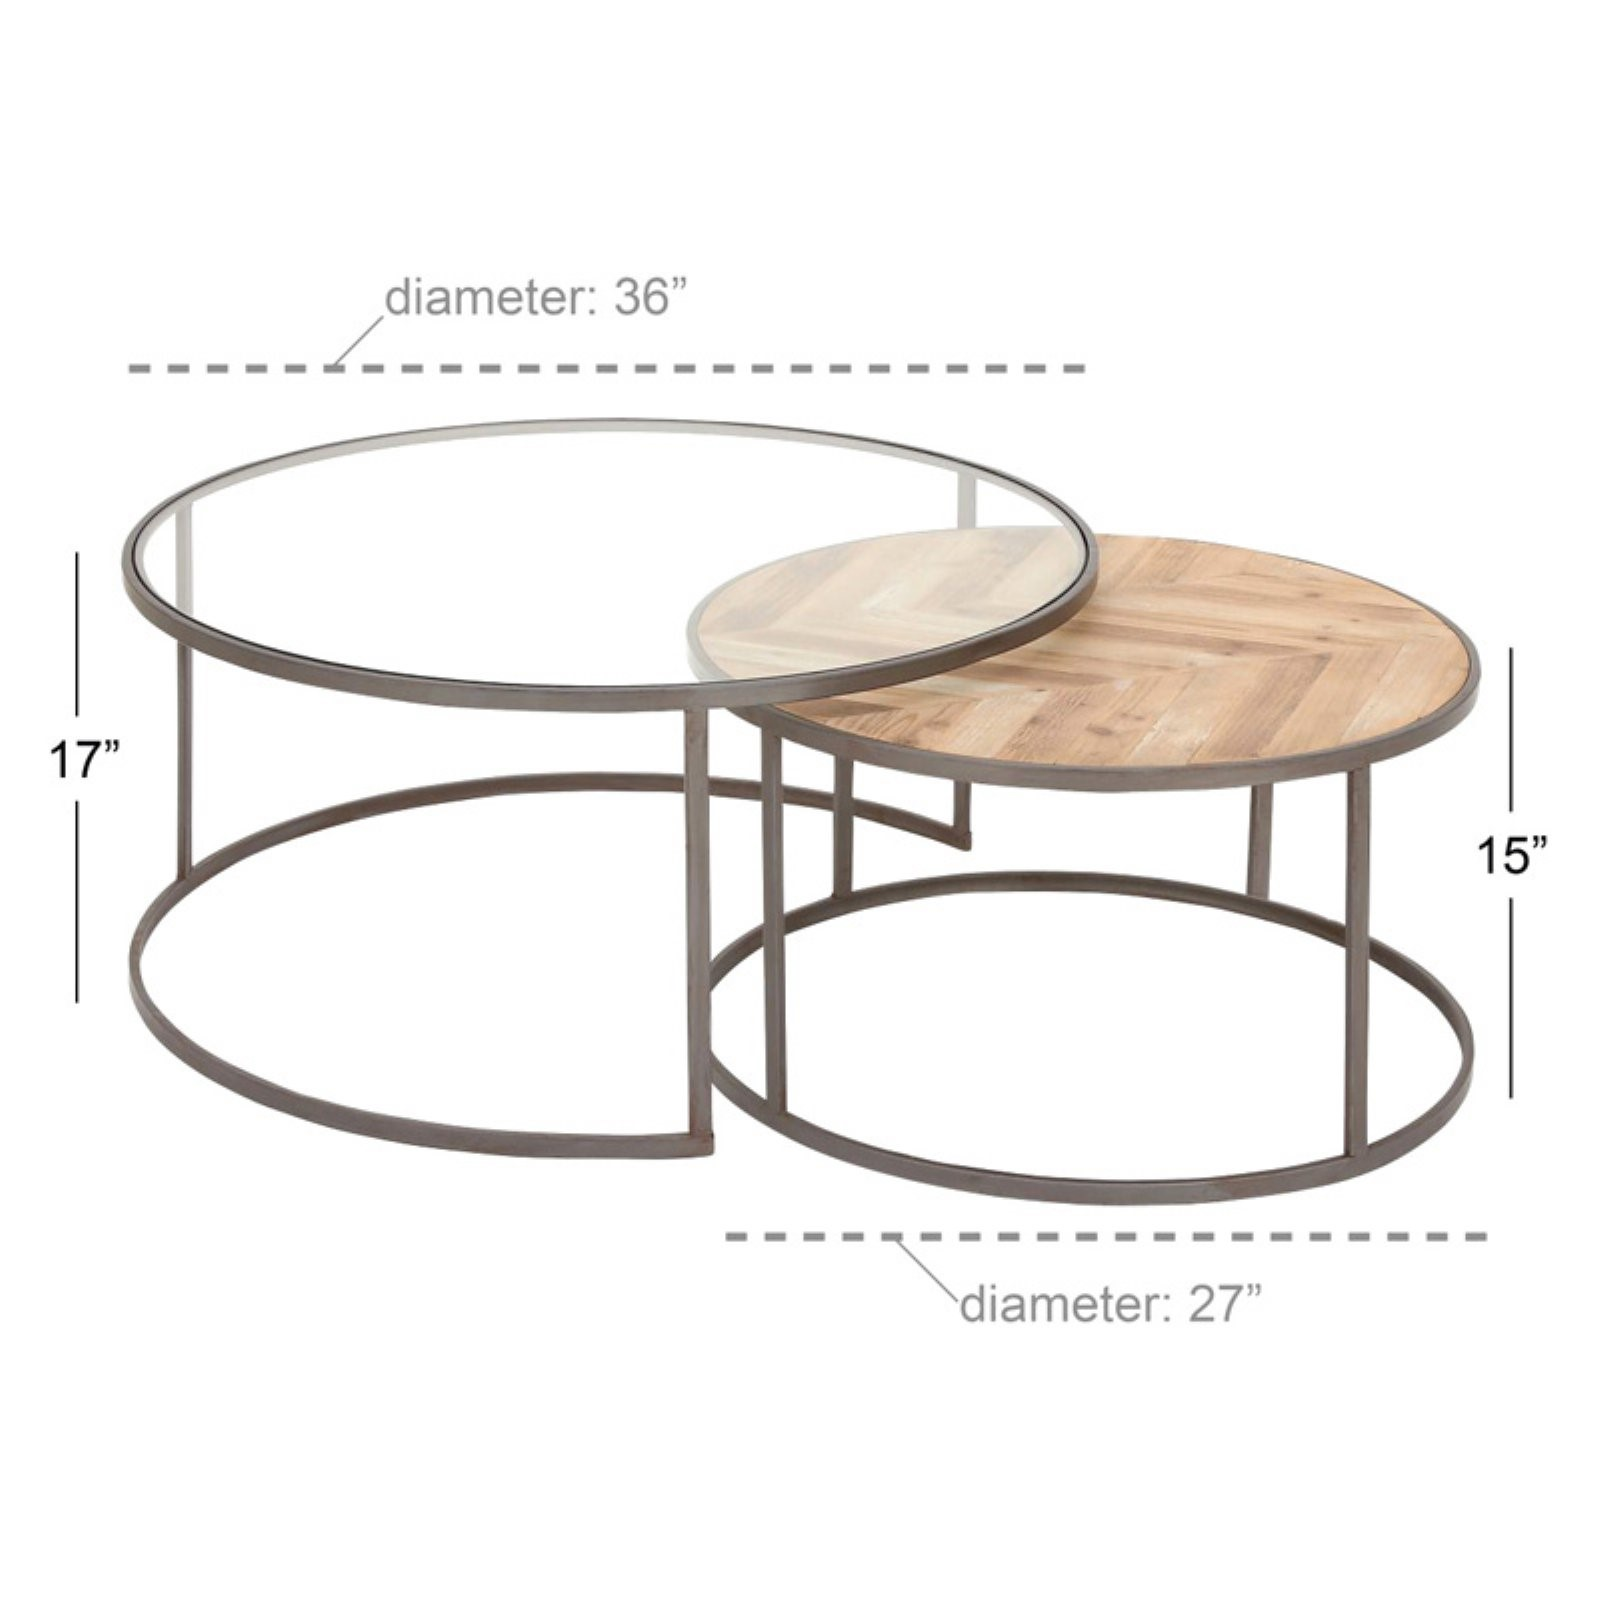 Decmode Large Contemporary Metal Glass Wood Nesting Round